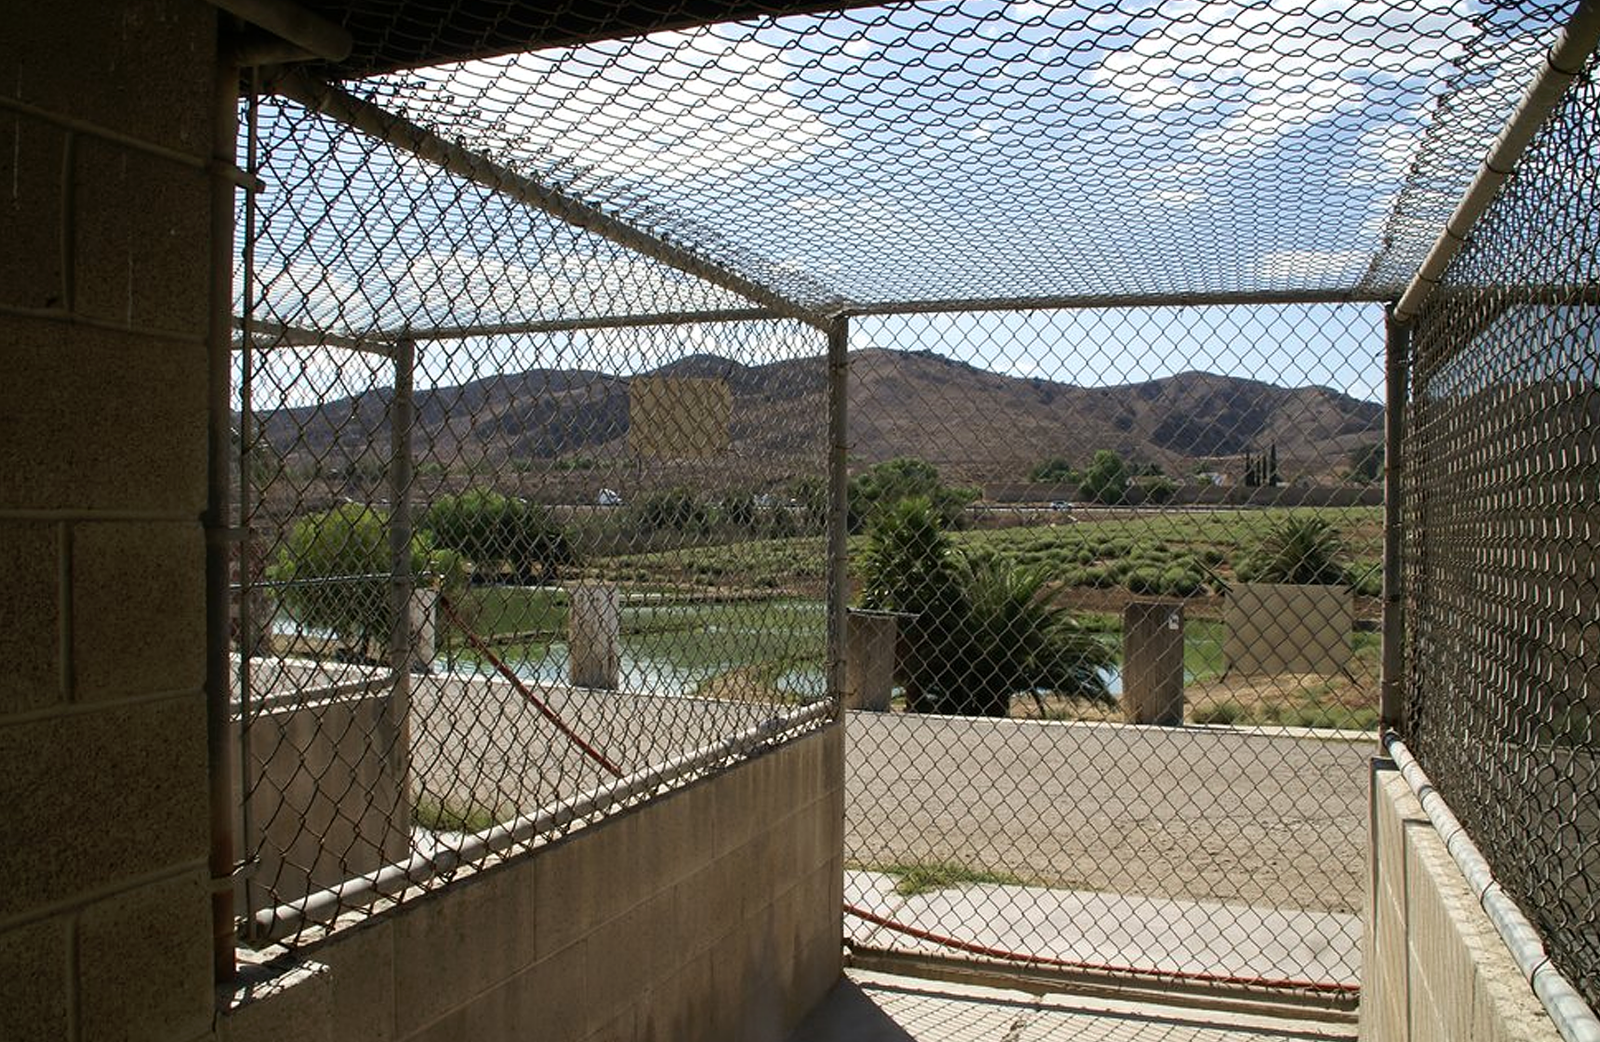 Inside view of the Prado dog park kennel overlooking grass and mountains in the background.